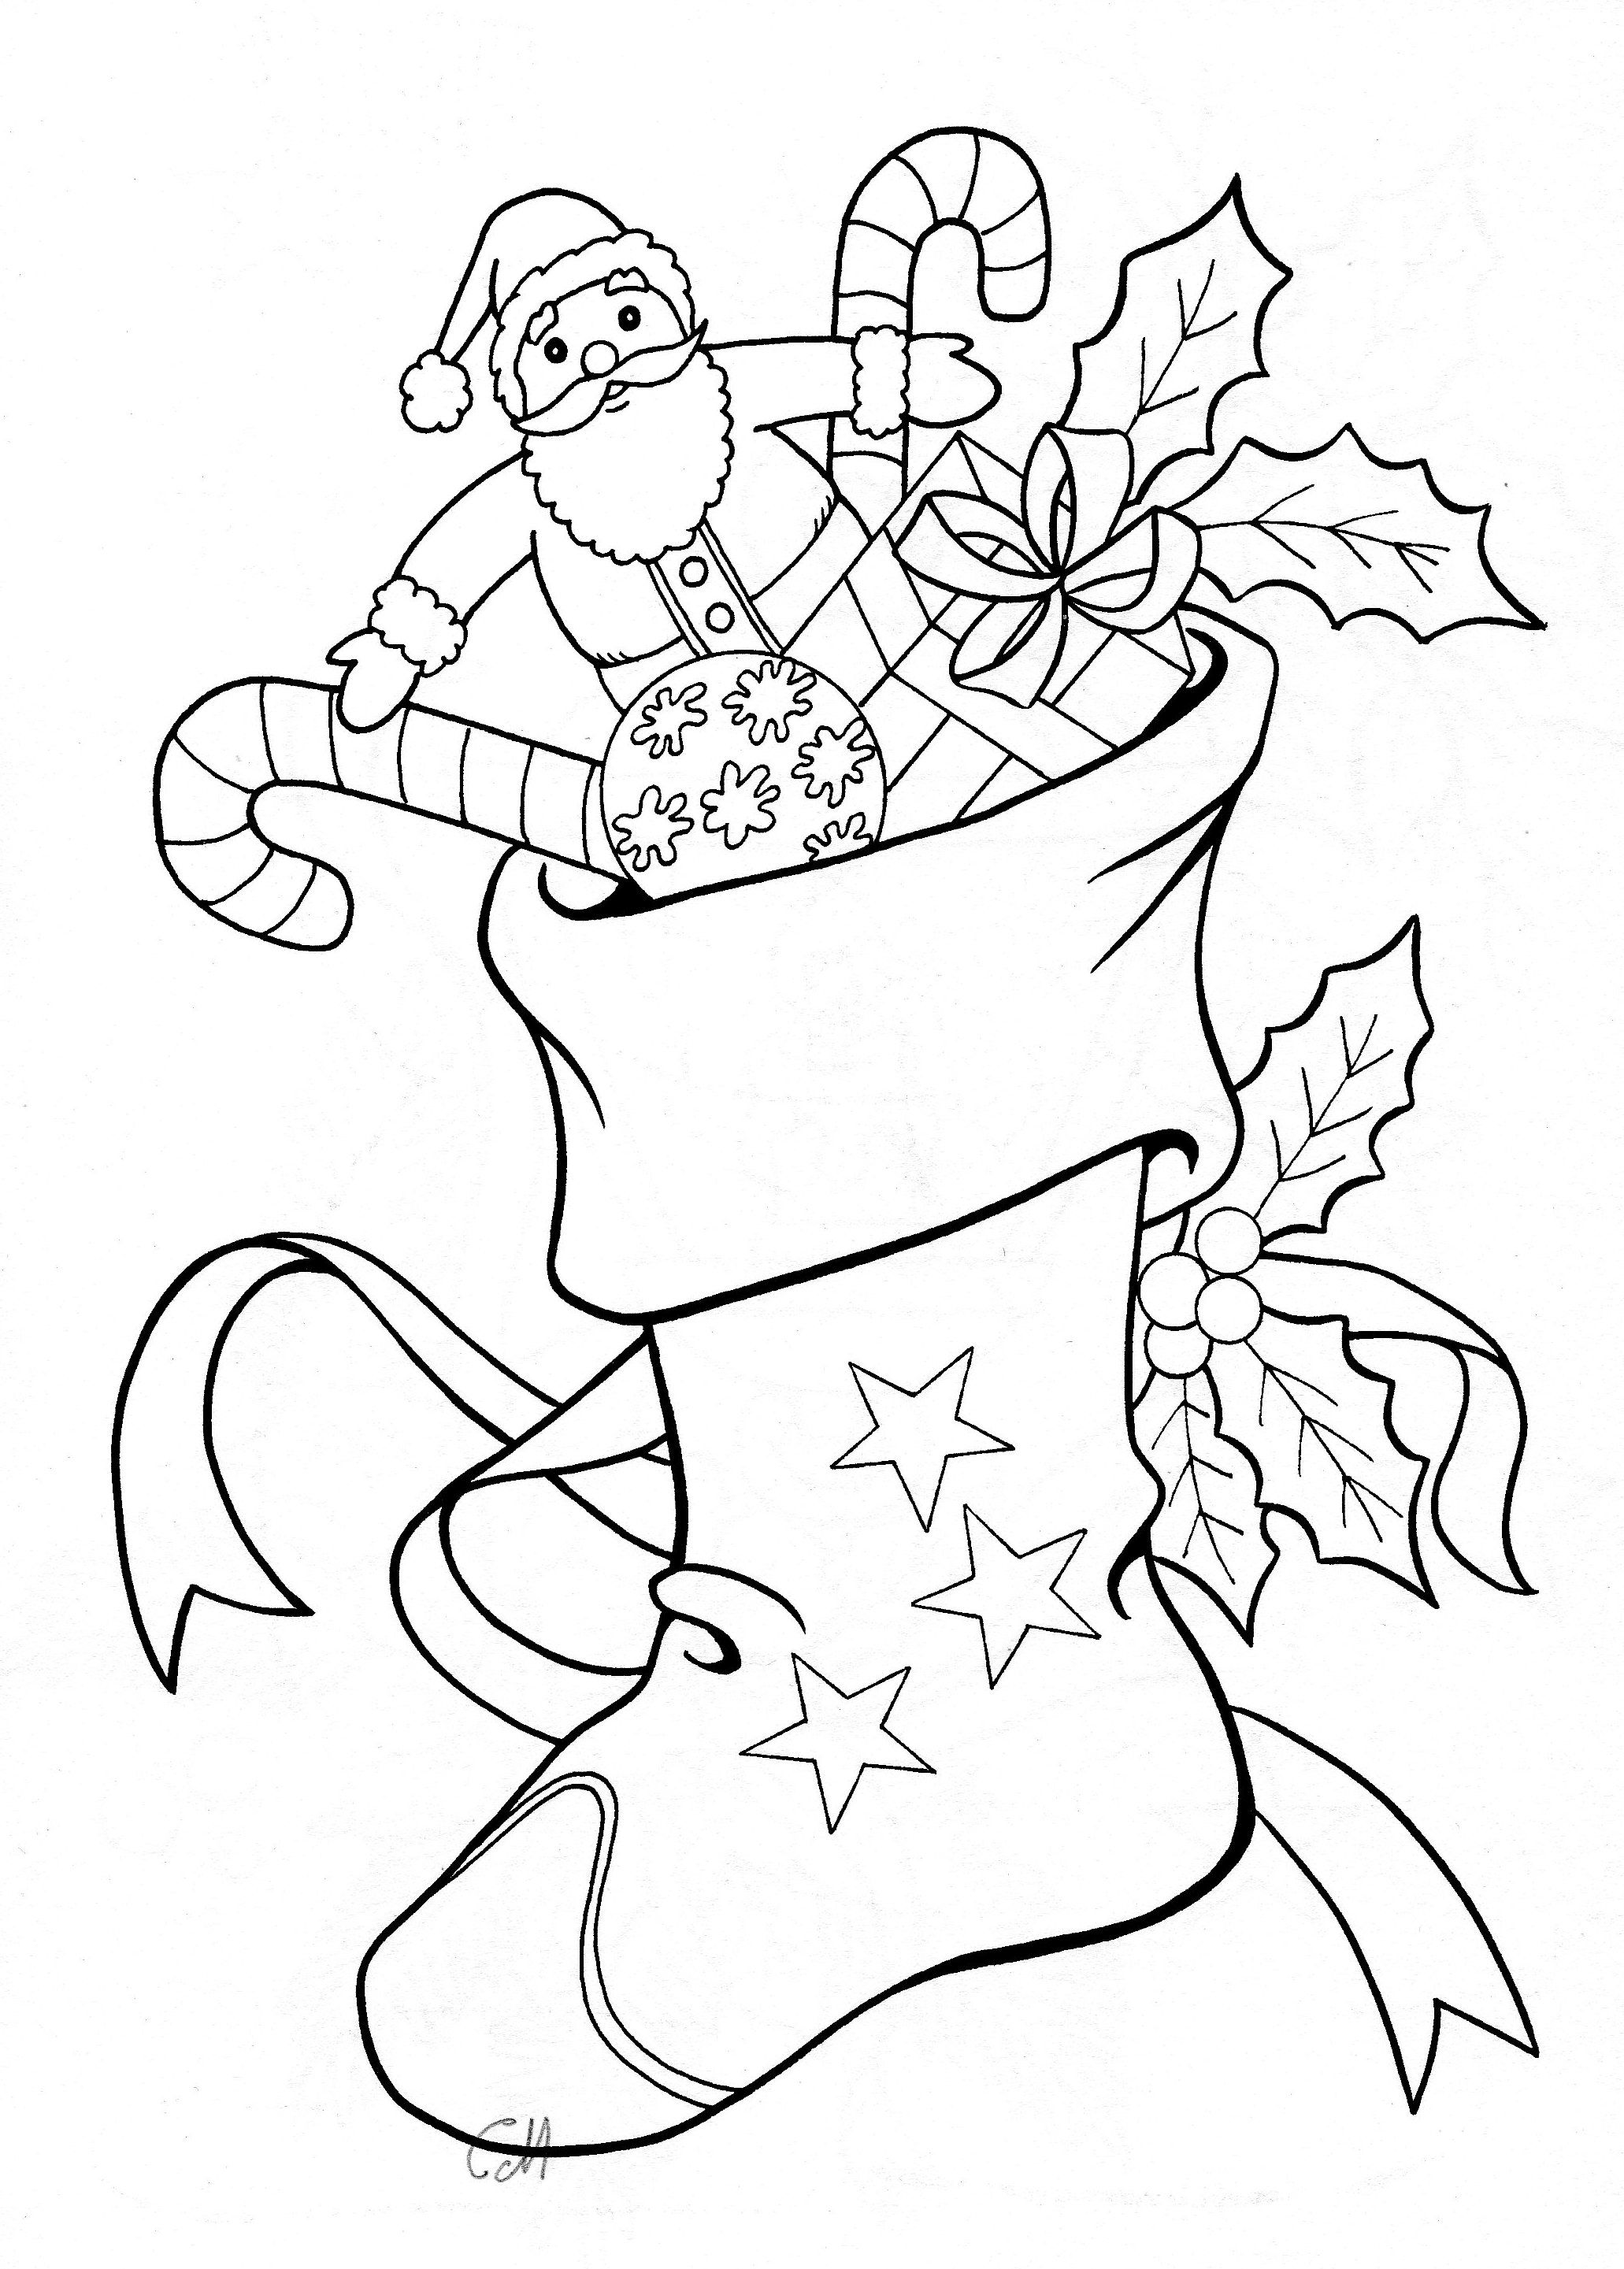 Christmas Embroidery patterns Christmas coloring sheets